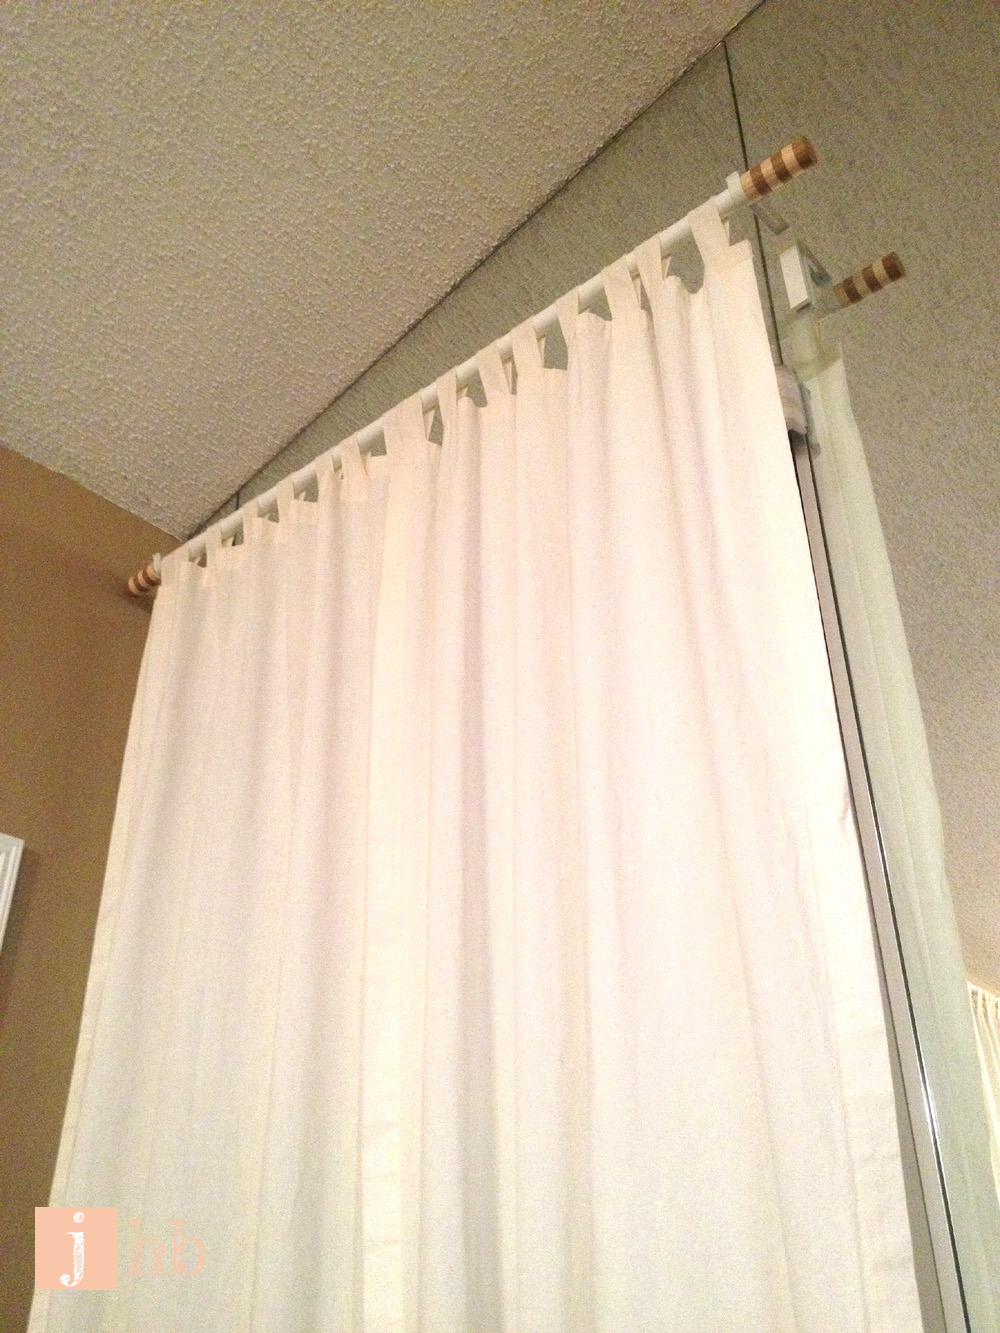 Hang Curtain Rods Without Drilling Holes Hang Next to Wall Curtain